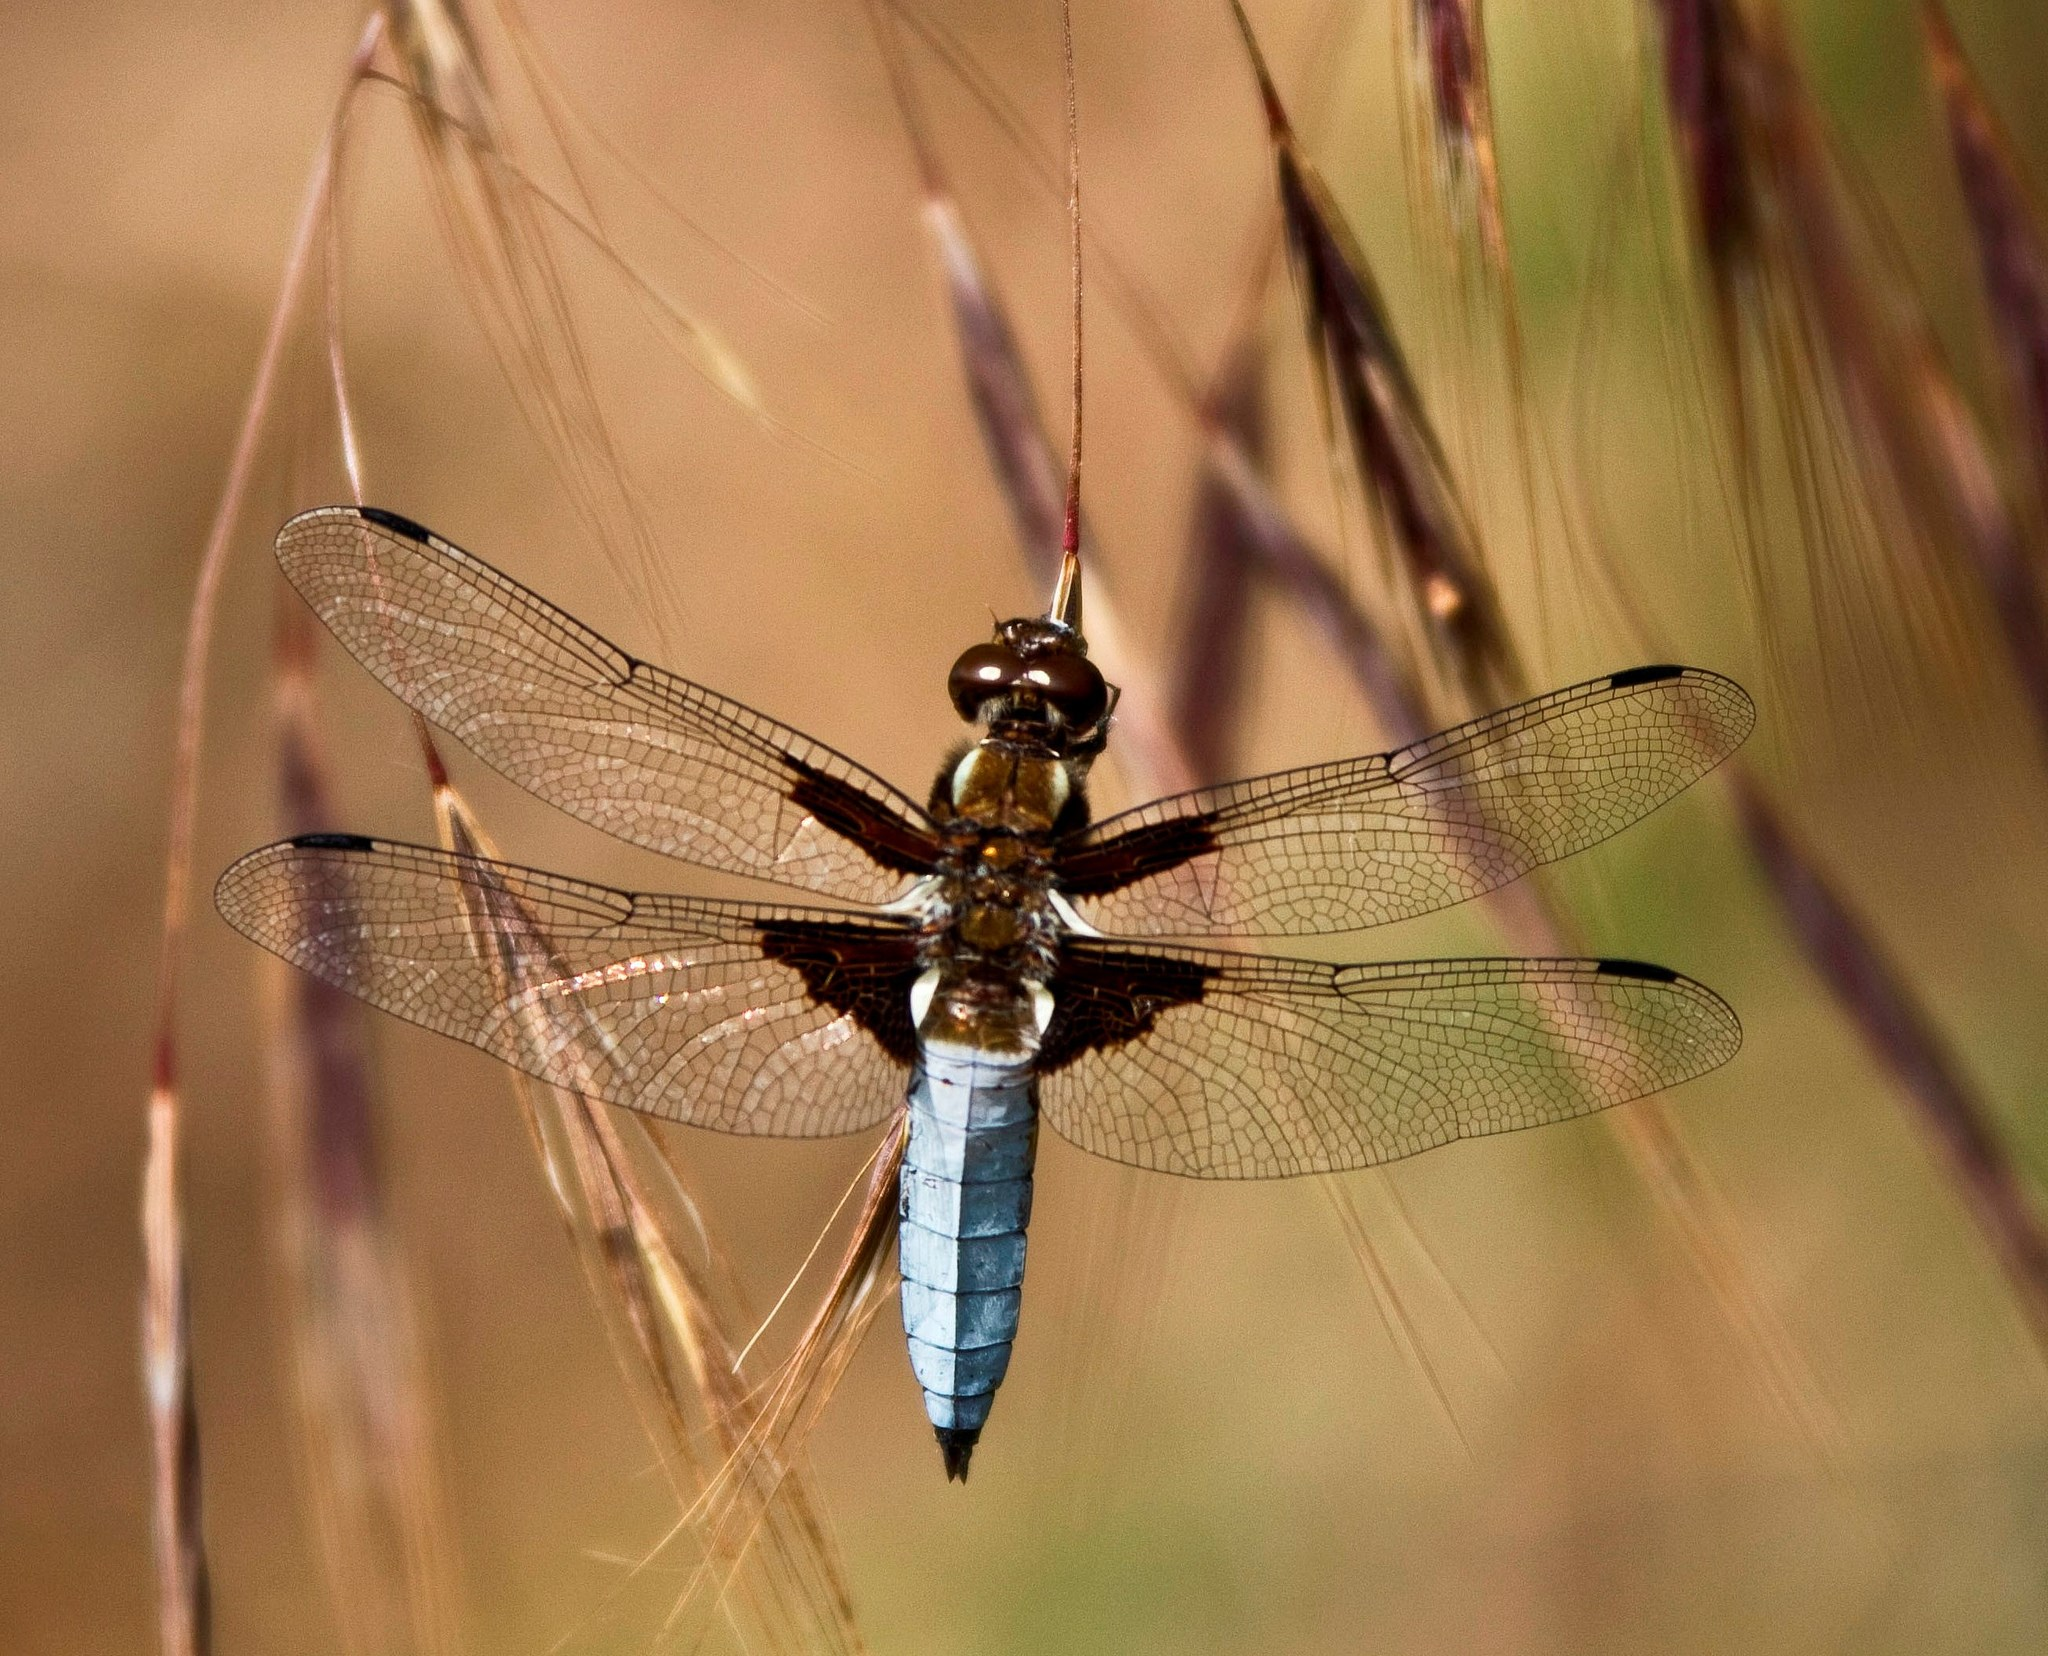 Barrick-Robertson-dragonfly-1080p-high-quality-x-px-wallpaper-wp3802797